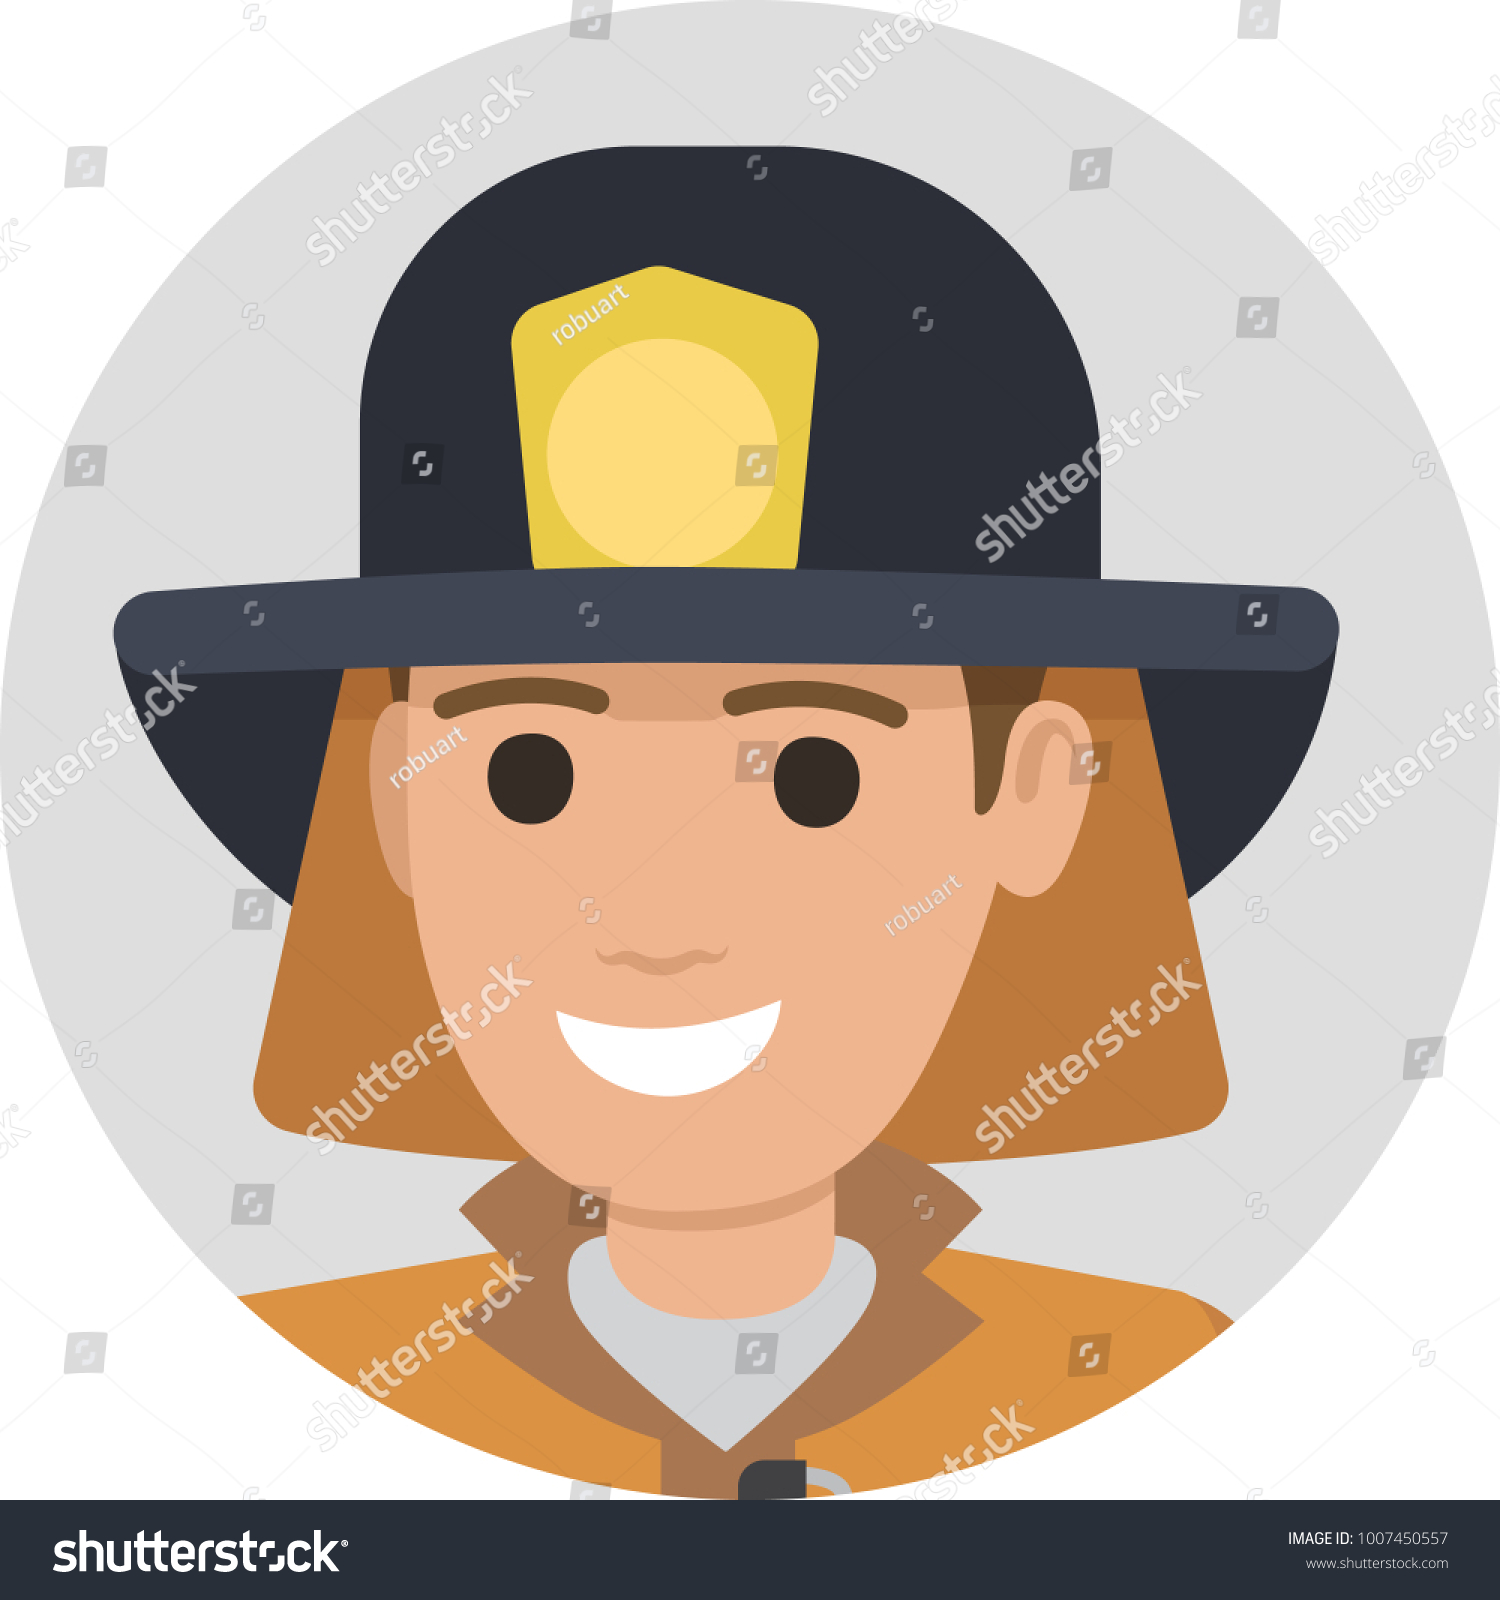 Cheerful firefighter in protective suit and black hat close-up illustration  on white background. Male character in fireman uniform - Illustration 4be9efbd6701